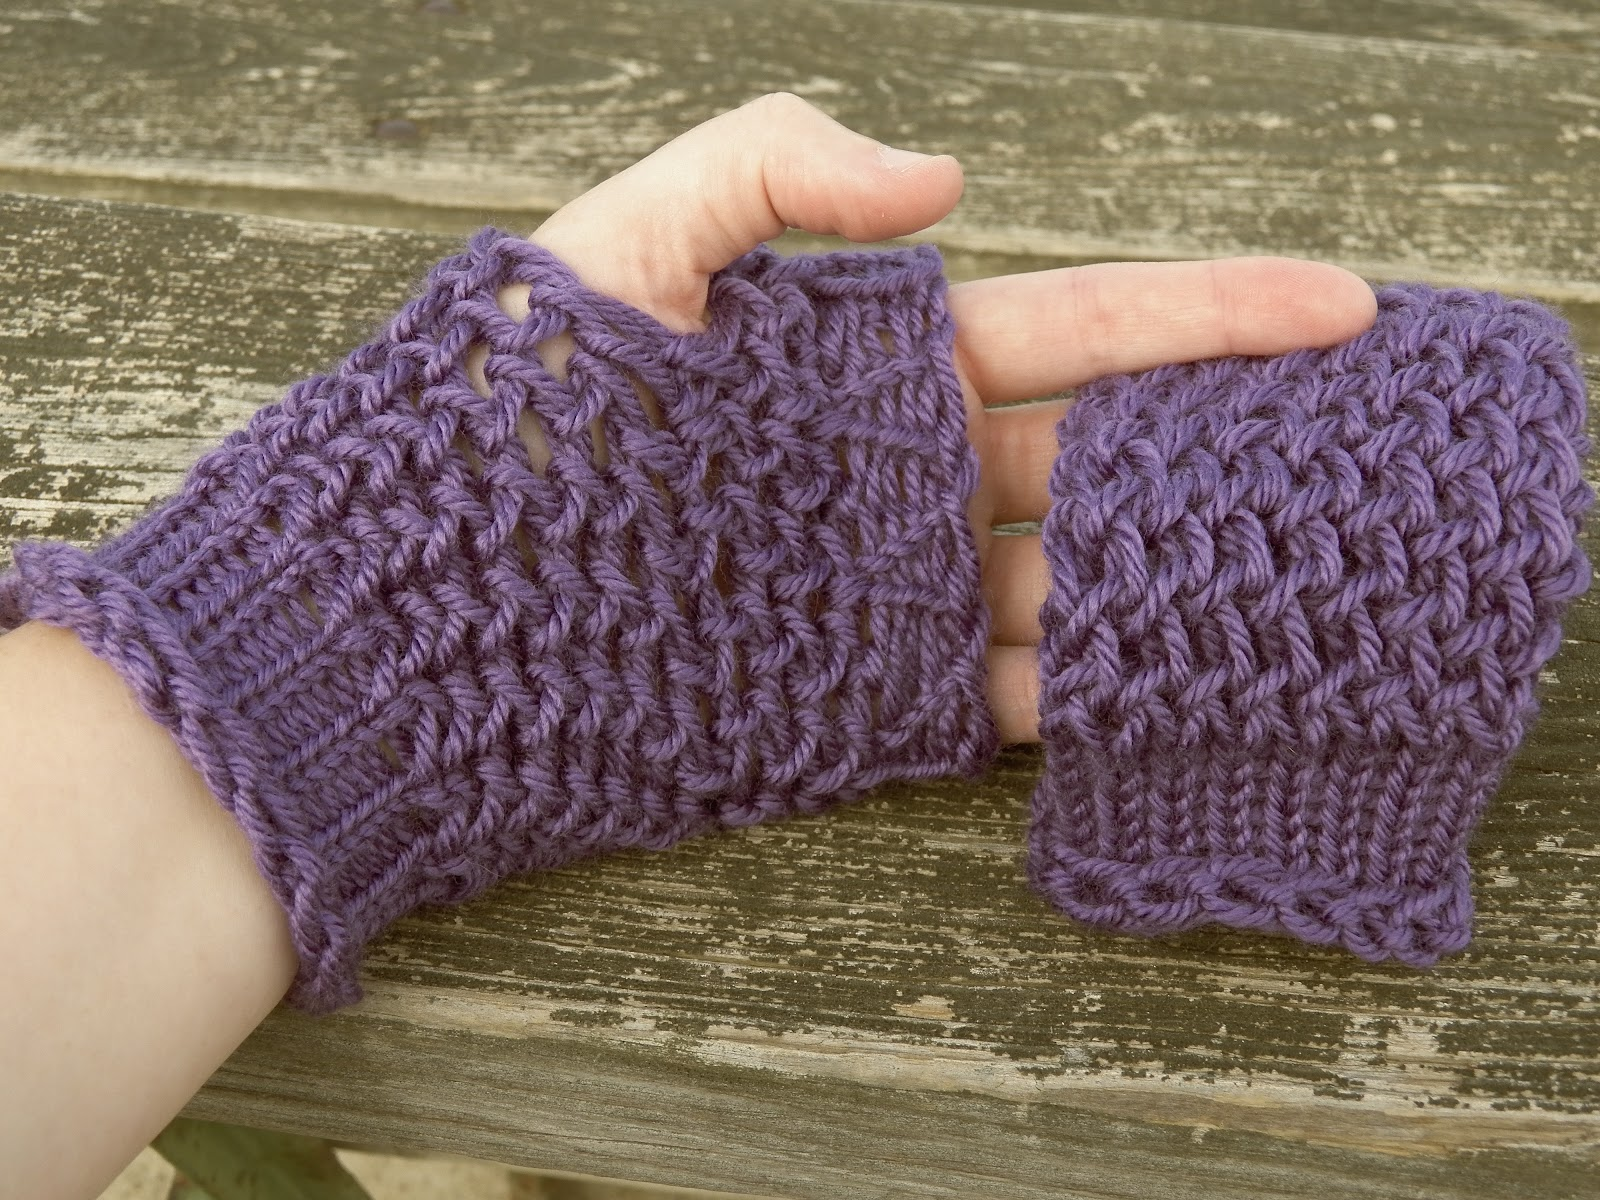 Knitting Mittens On A Loom : How to knit fingerless gloves on the knifty knitter loom